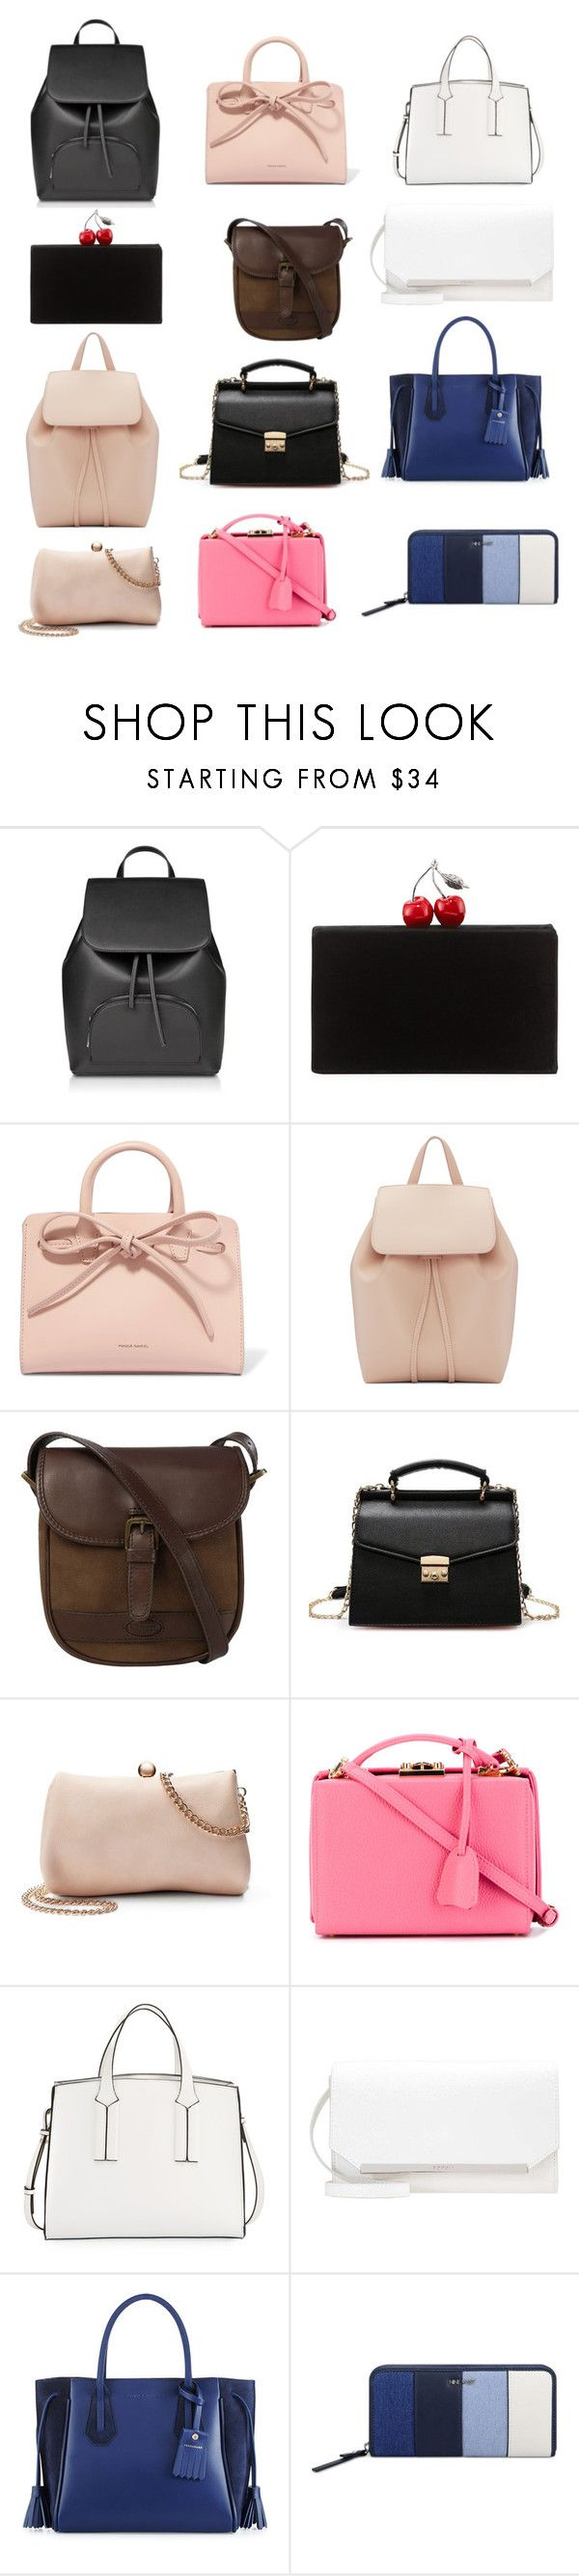 """сумки"" by tamaraatma on Polyvore featuring Edie Parker, Mansur Gavriel, DUBARRY, LC Lauren Conrad, Mark Cross, French Connection, Longchamp and Nine West"